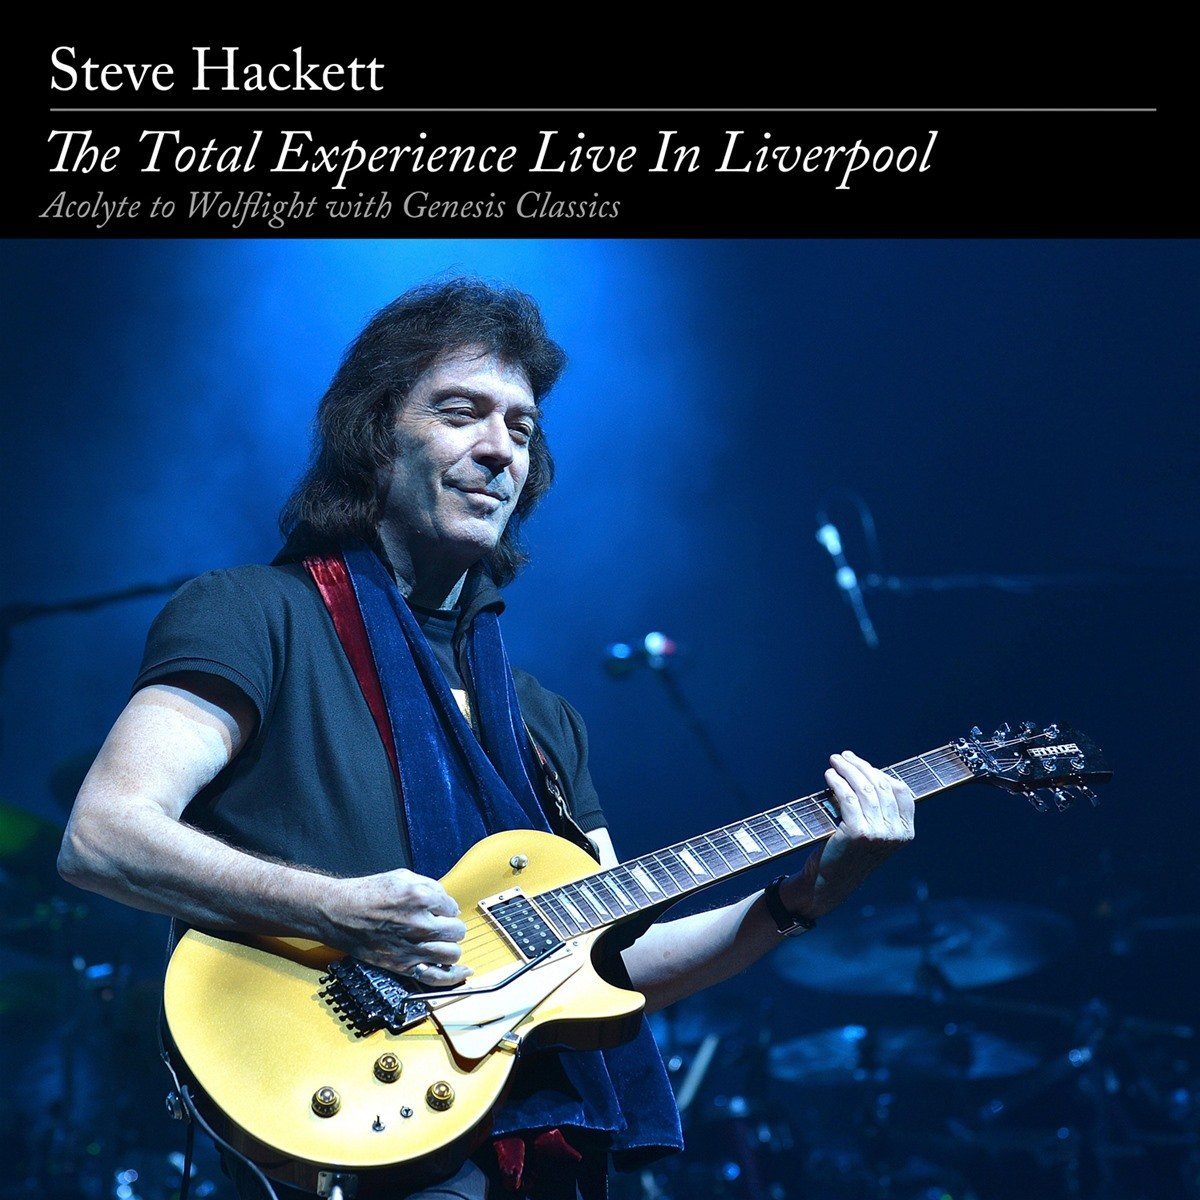 Steve Hackett – The Total Experience Live In Liverpool (2016) 720p+1080p MBluRay x264-FKKHD